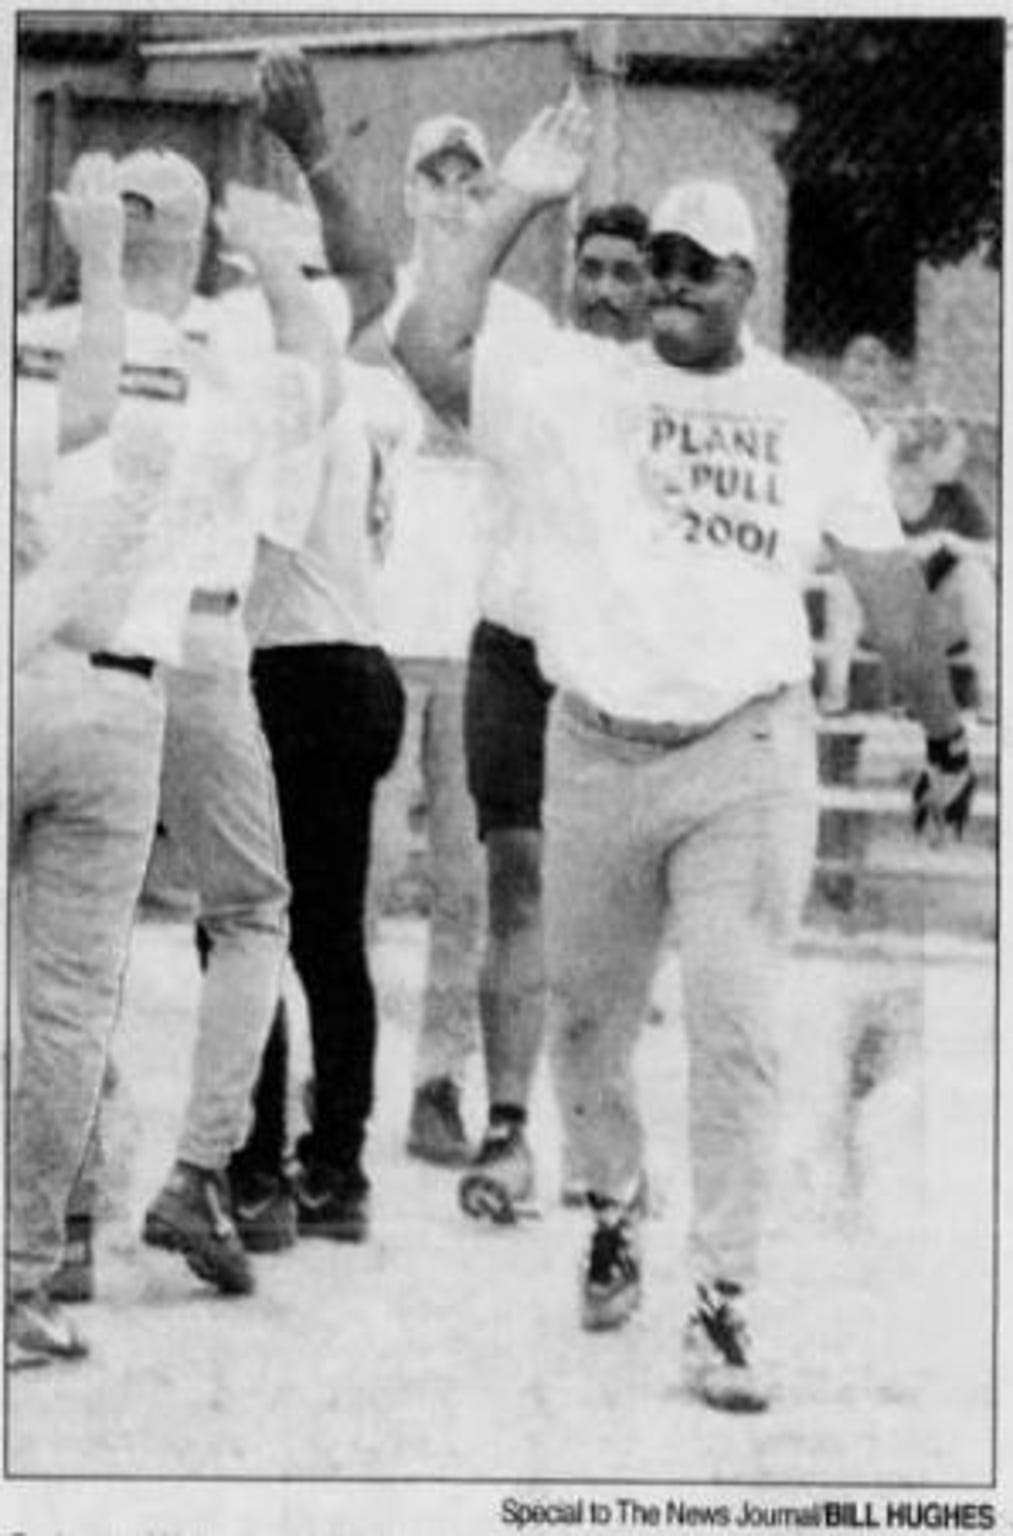 In this file photo from The News Journal archives, Quinton Watson gets high-fives after hitting a home run during a softball game against a team from the Delaware State Police. Watson was with the New Castle County Police Department for more than 30 years.